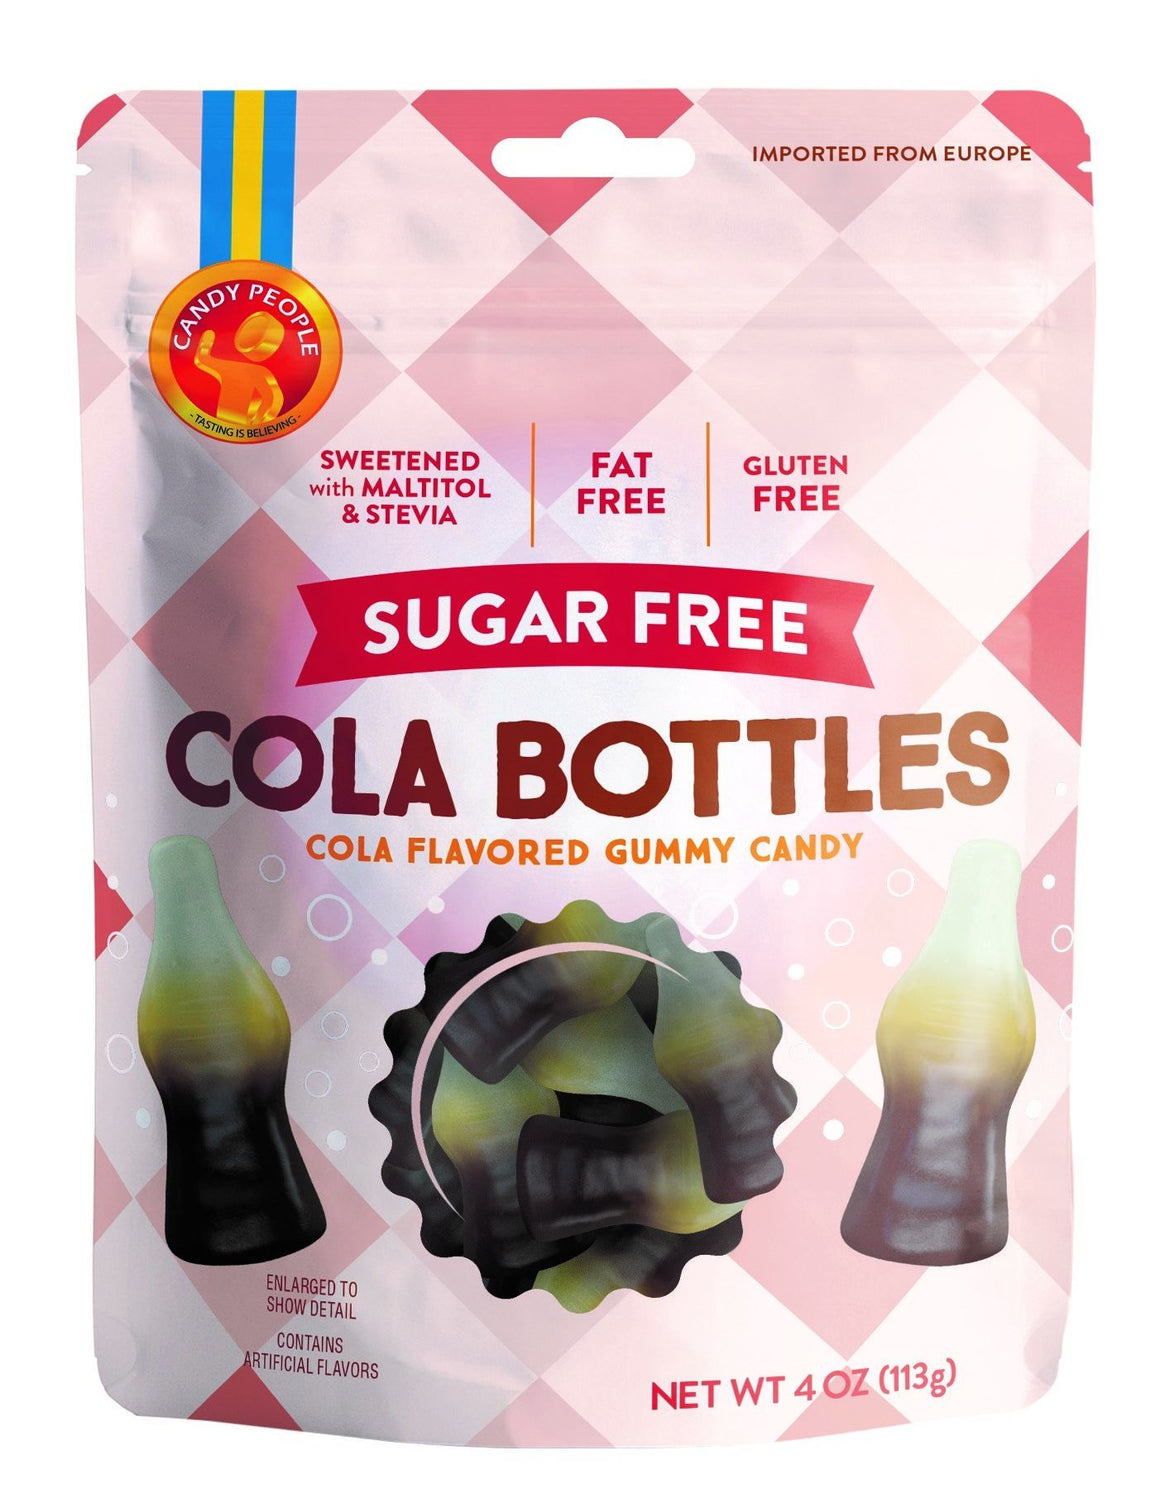 Candy People -  Sugar Free Cola Bottles - Cola Flavored Gummy Candy - 4 oz bag